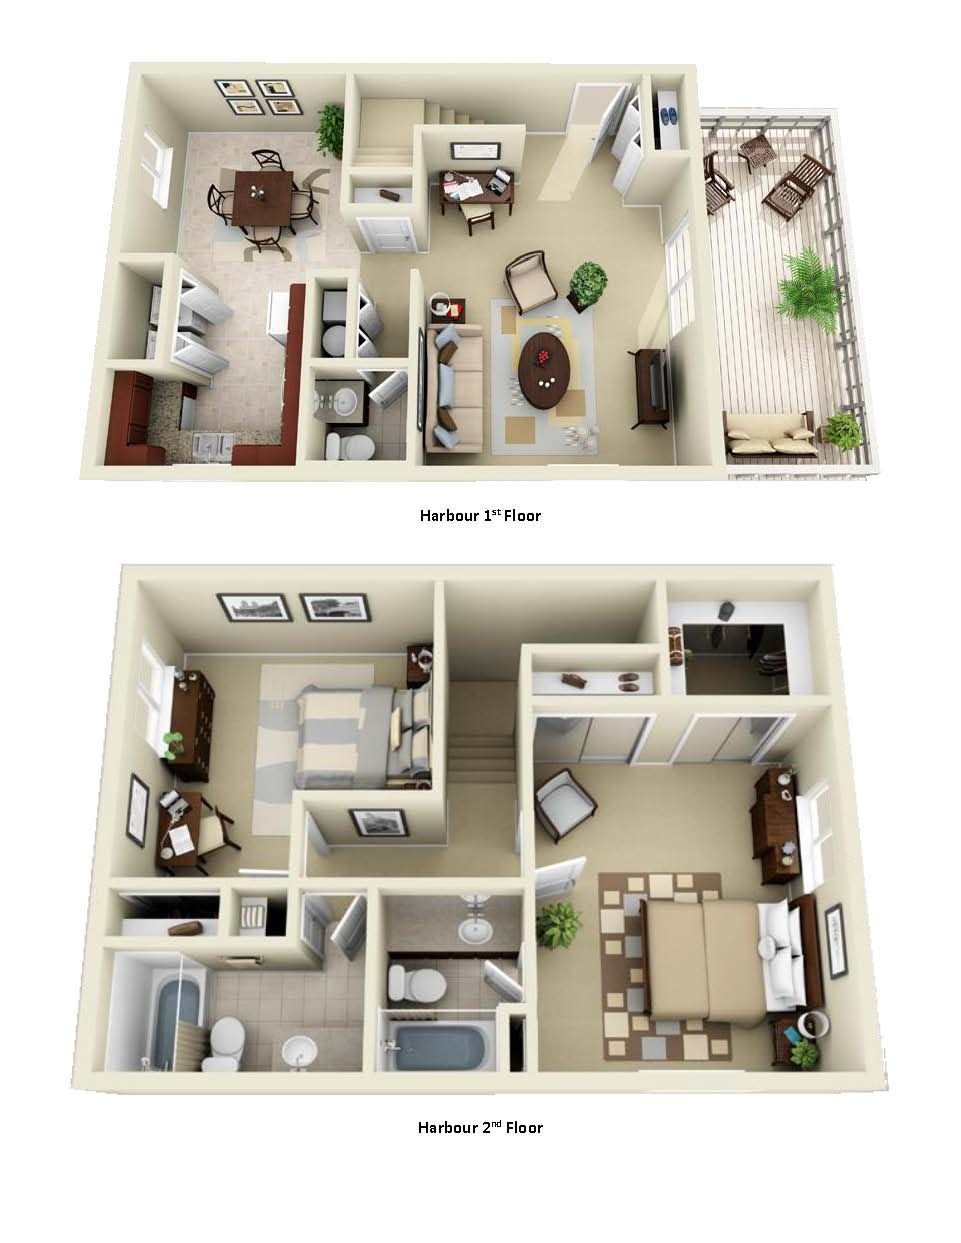 Pleasant Luxury 1 2 And 3 Bedroom Apartments In Indianapolis In Download Free Architecture Designs Sospemadebymaigaardcom